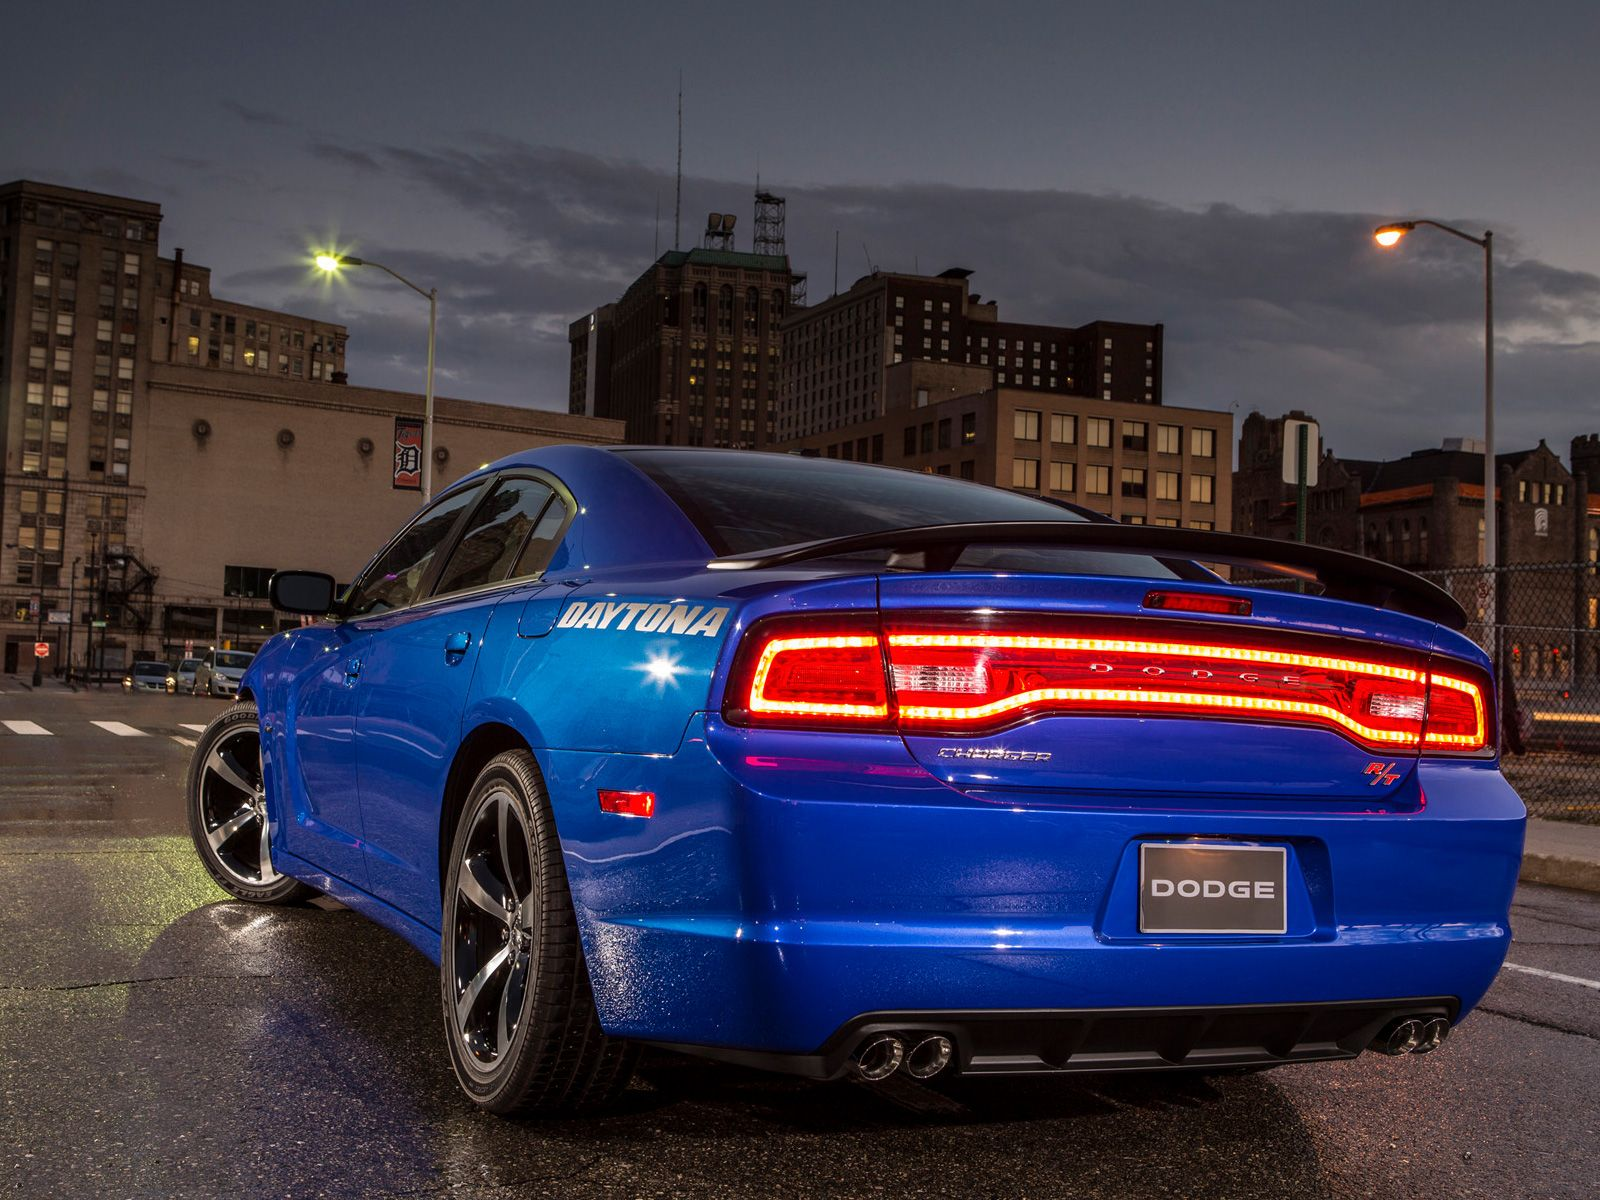 Dodge charger 2 door prototype concept cars pinterest dodge charger dodge and coupe